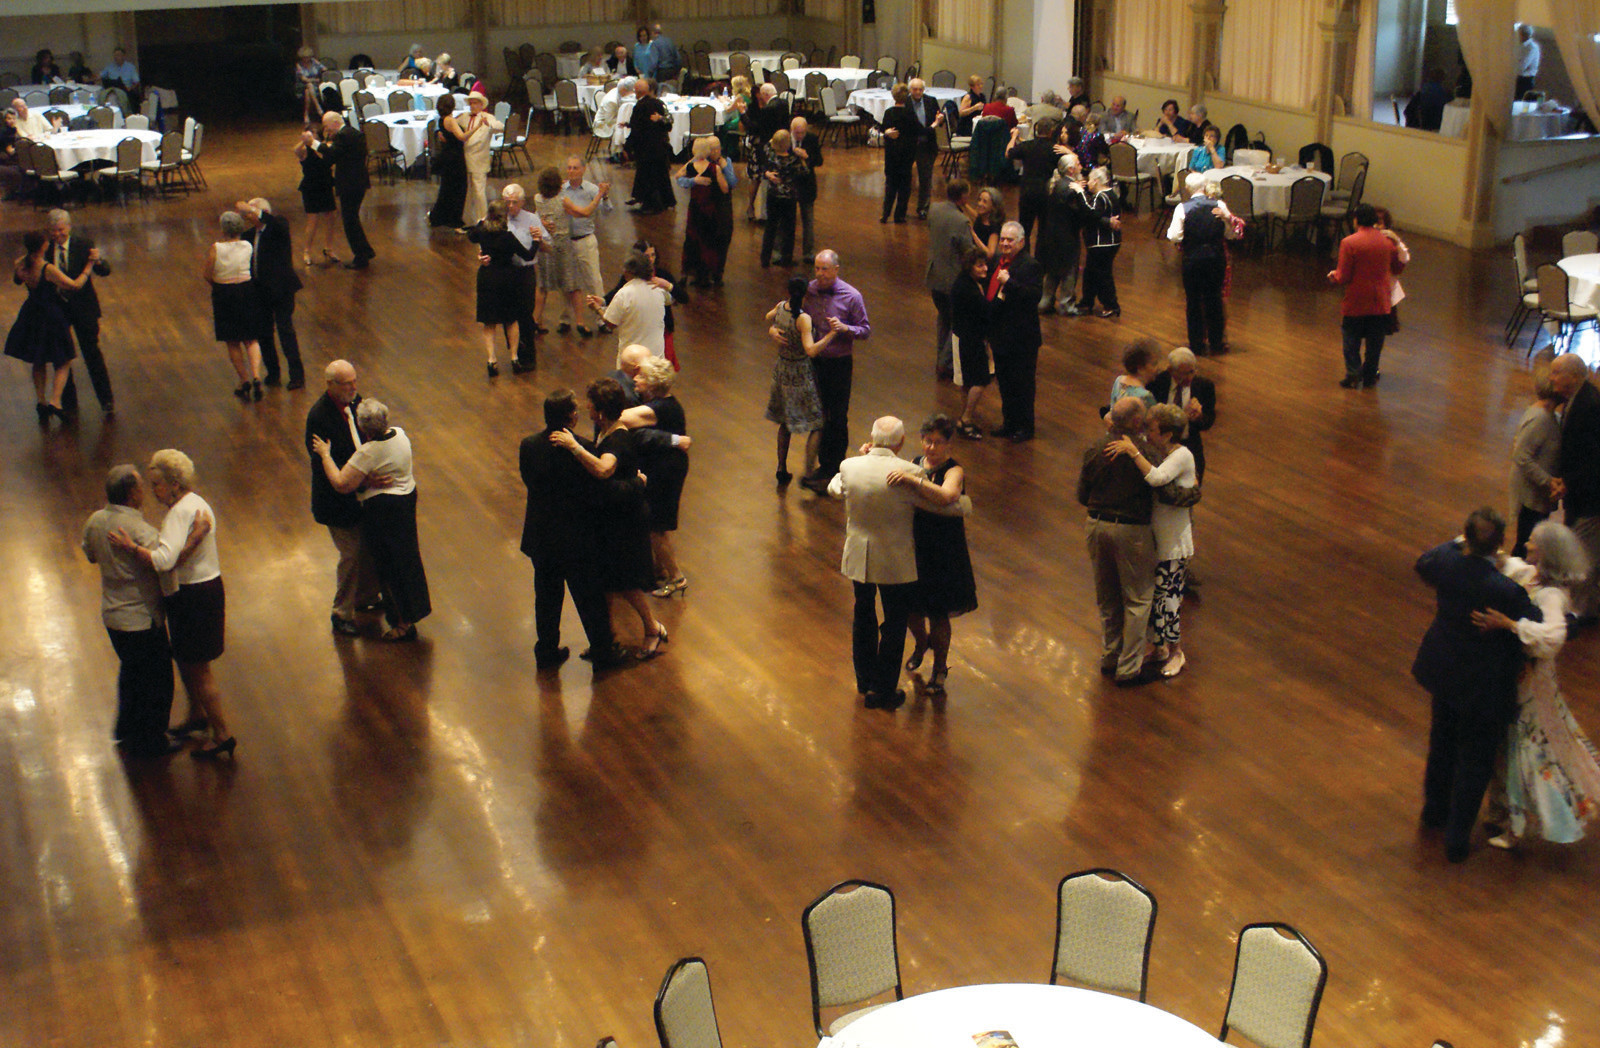 A NIGHT OF MUSIC AND DANCE: Pictured dancing are just some of the 500 people who attended the Spring Edition of the Cavalcade of Bands at Rhodes on the Pawtuxet on May 30.